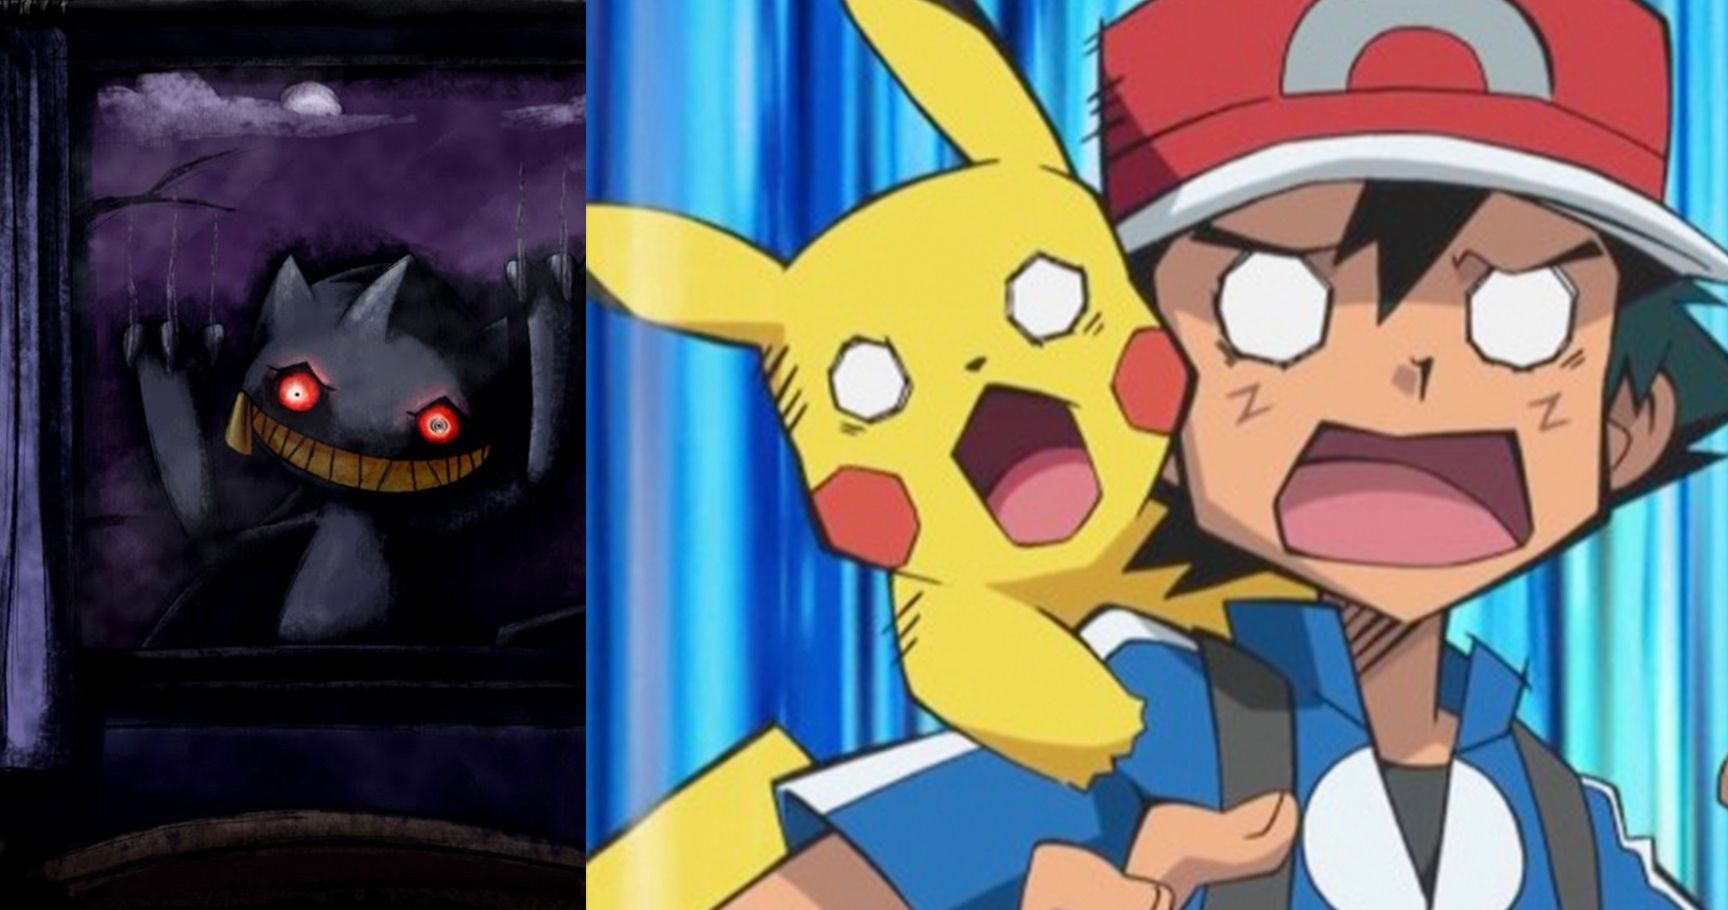 15 Dark AF Facts About Pokémon That Will Chill You To The Core